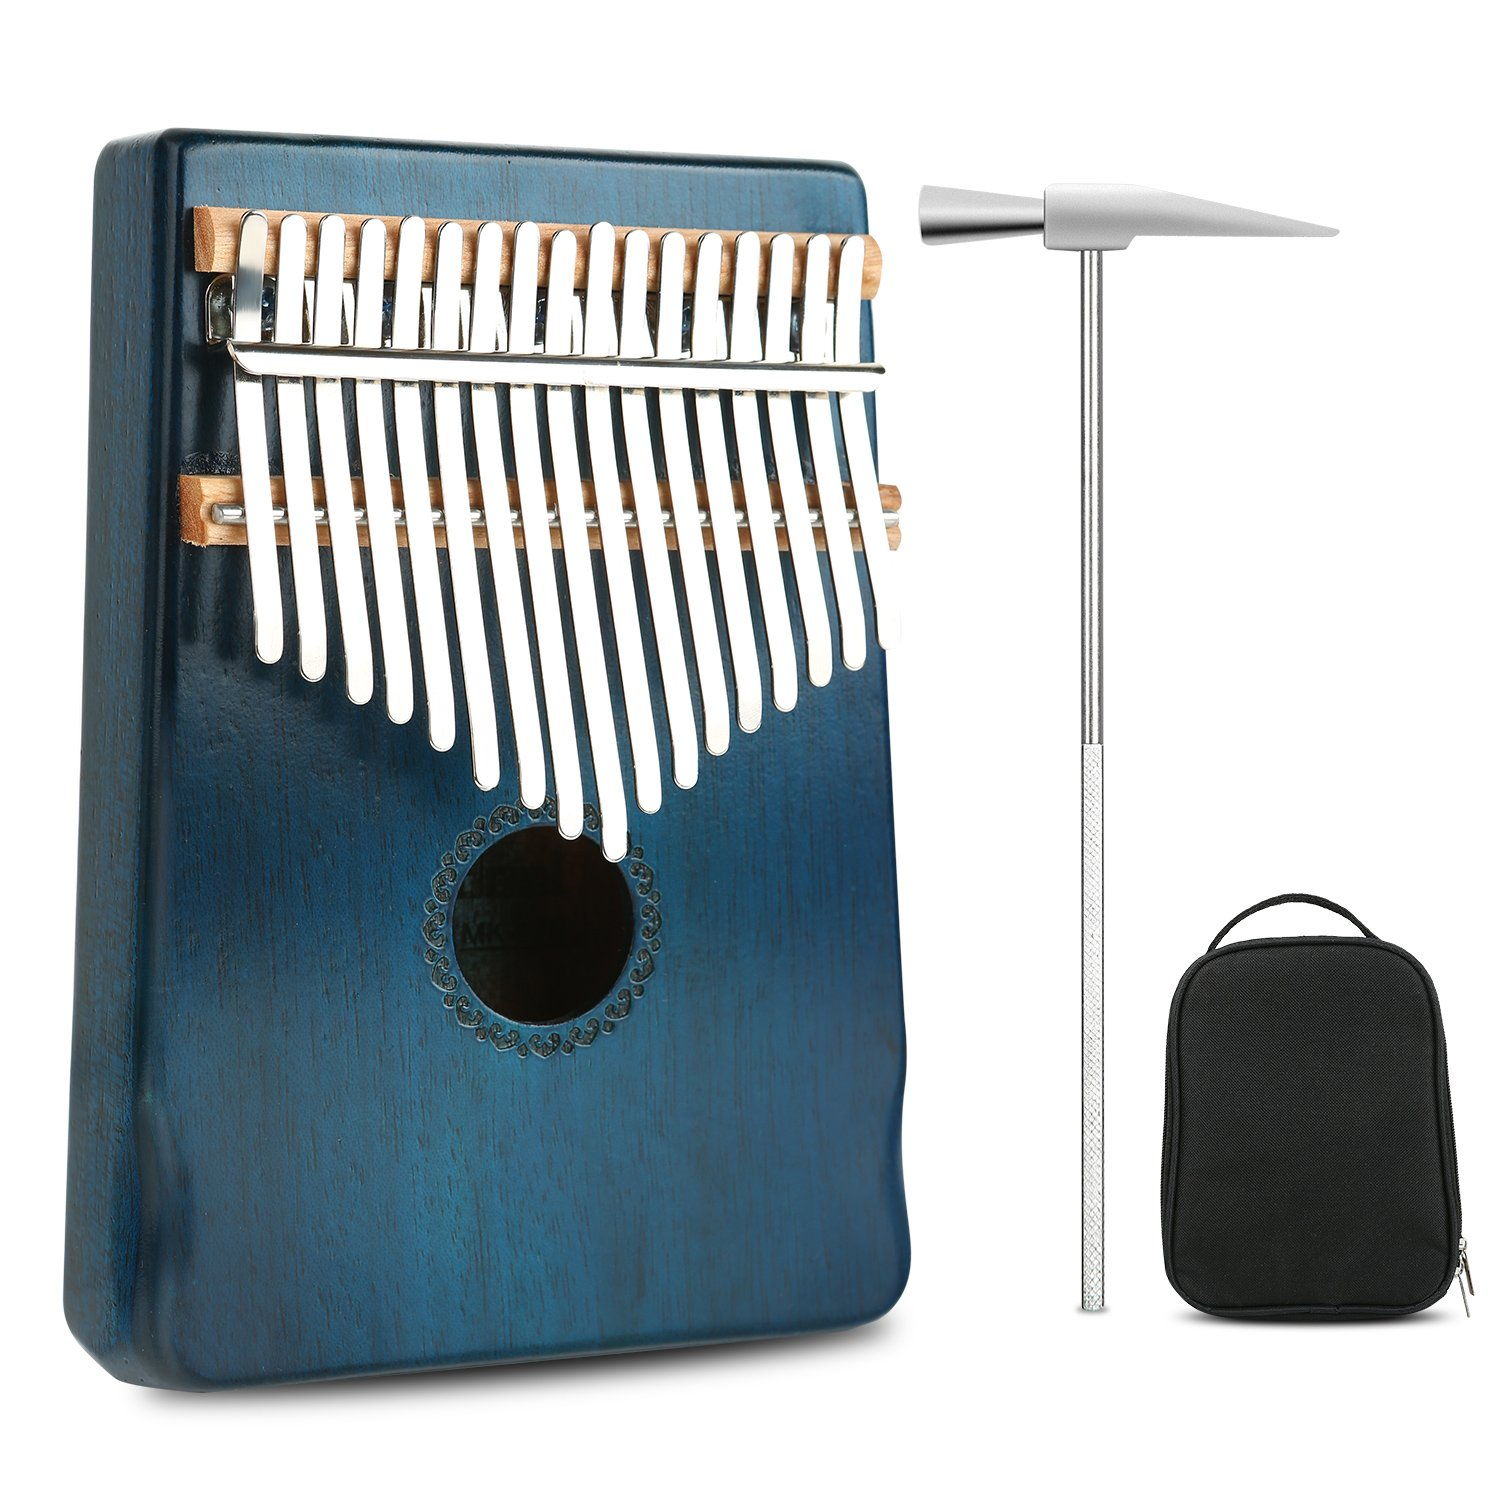 Kalimba Thumb Piano Professional Series 17 Keys Instrument Kits Finger Piano Mbira Likembe Sanza Music Gift Mahogany Wood with Protable Portection Bag Blue Meideal